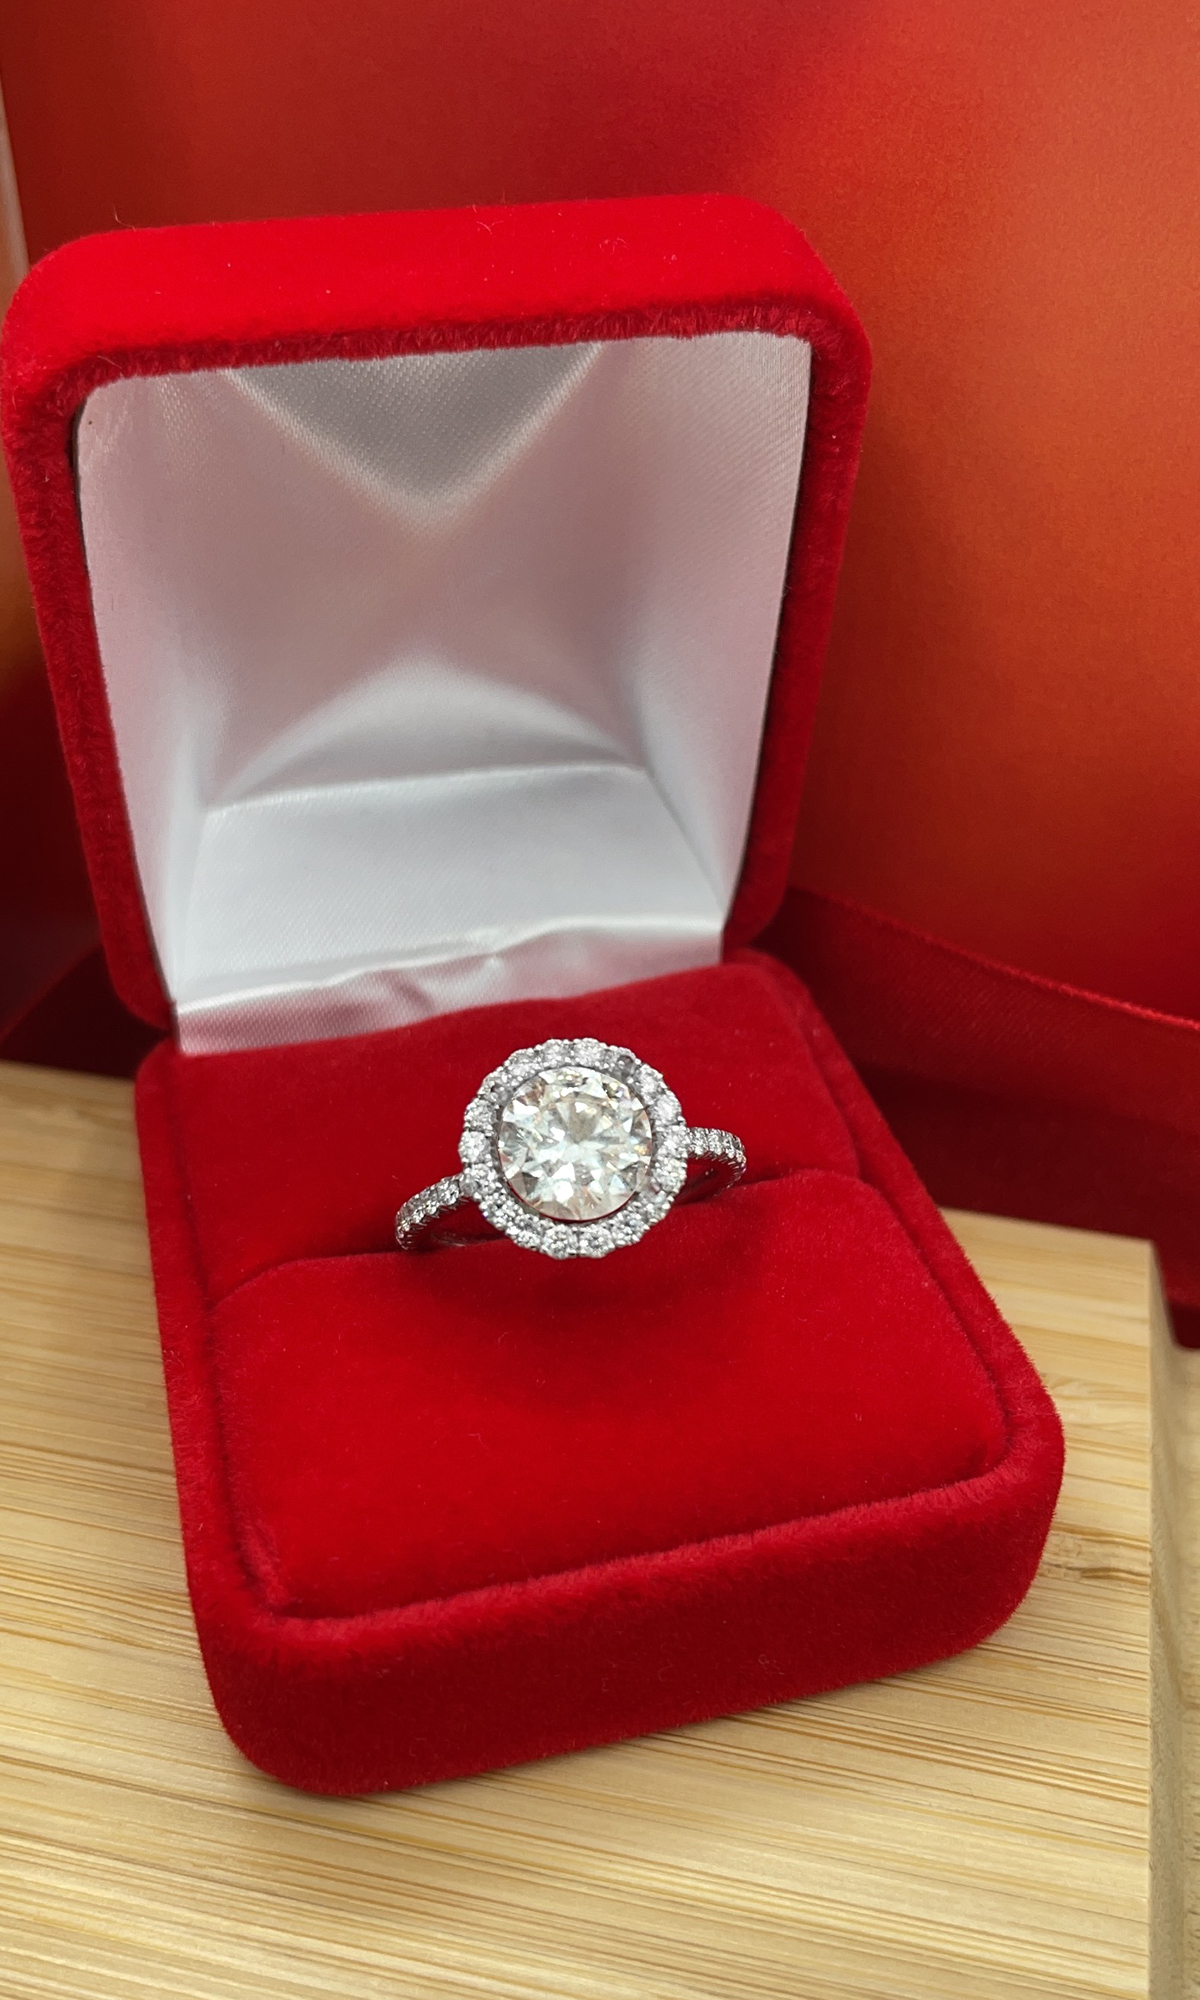 Absolutely breathtaking engagement ring